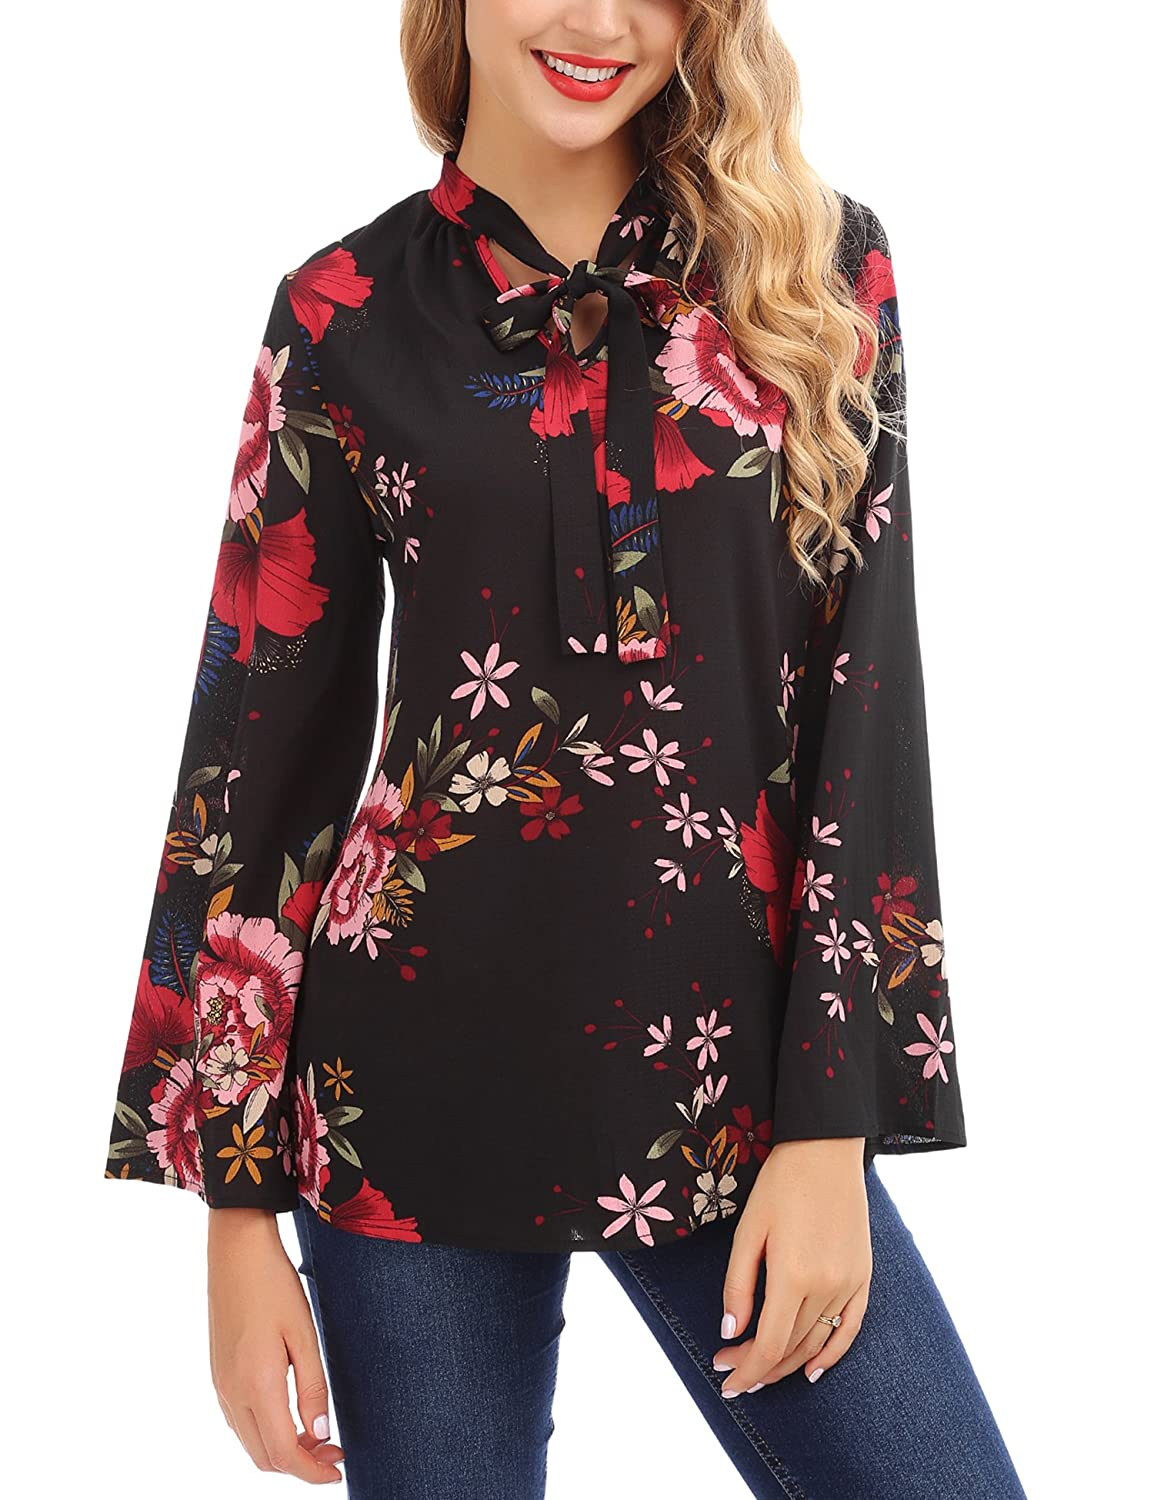 2e8ac49331de7 WOMEN BLOUSE MATERIAL- High quality chiffon tunic shirt. FLORAL BLOUSE -  Crafted from chiffon fabric